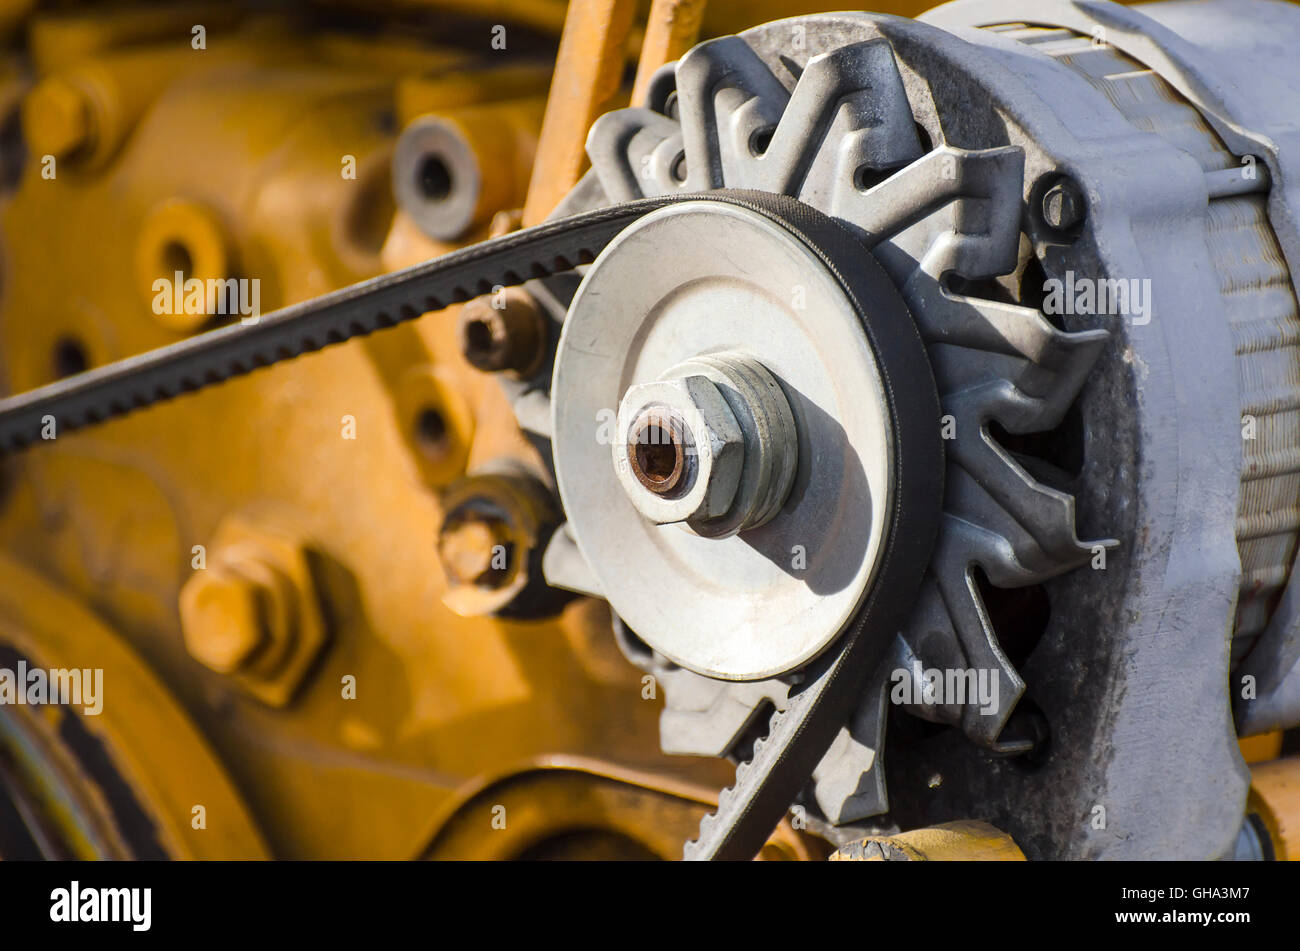 Motors, pumps, conveyors, large steel screw machines. - Stock Image